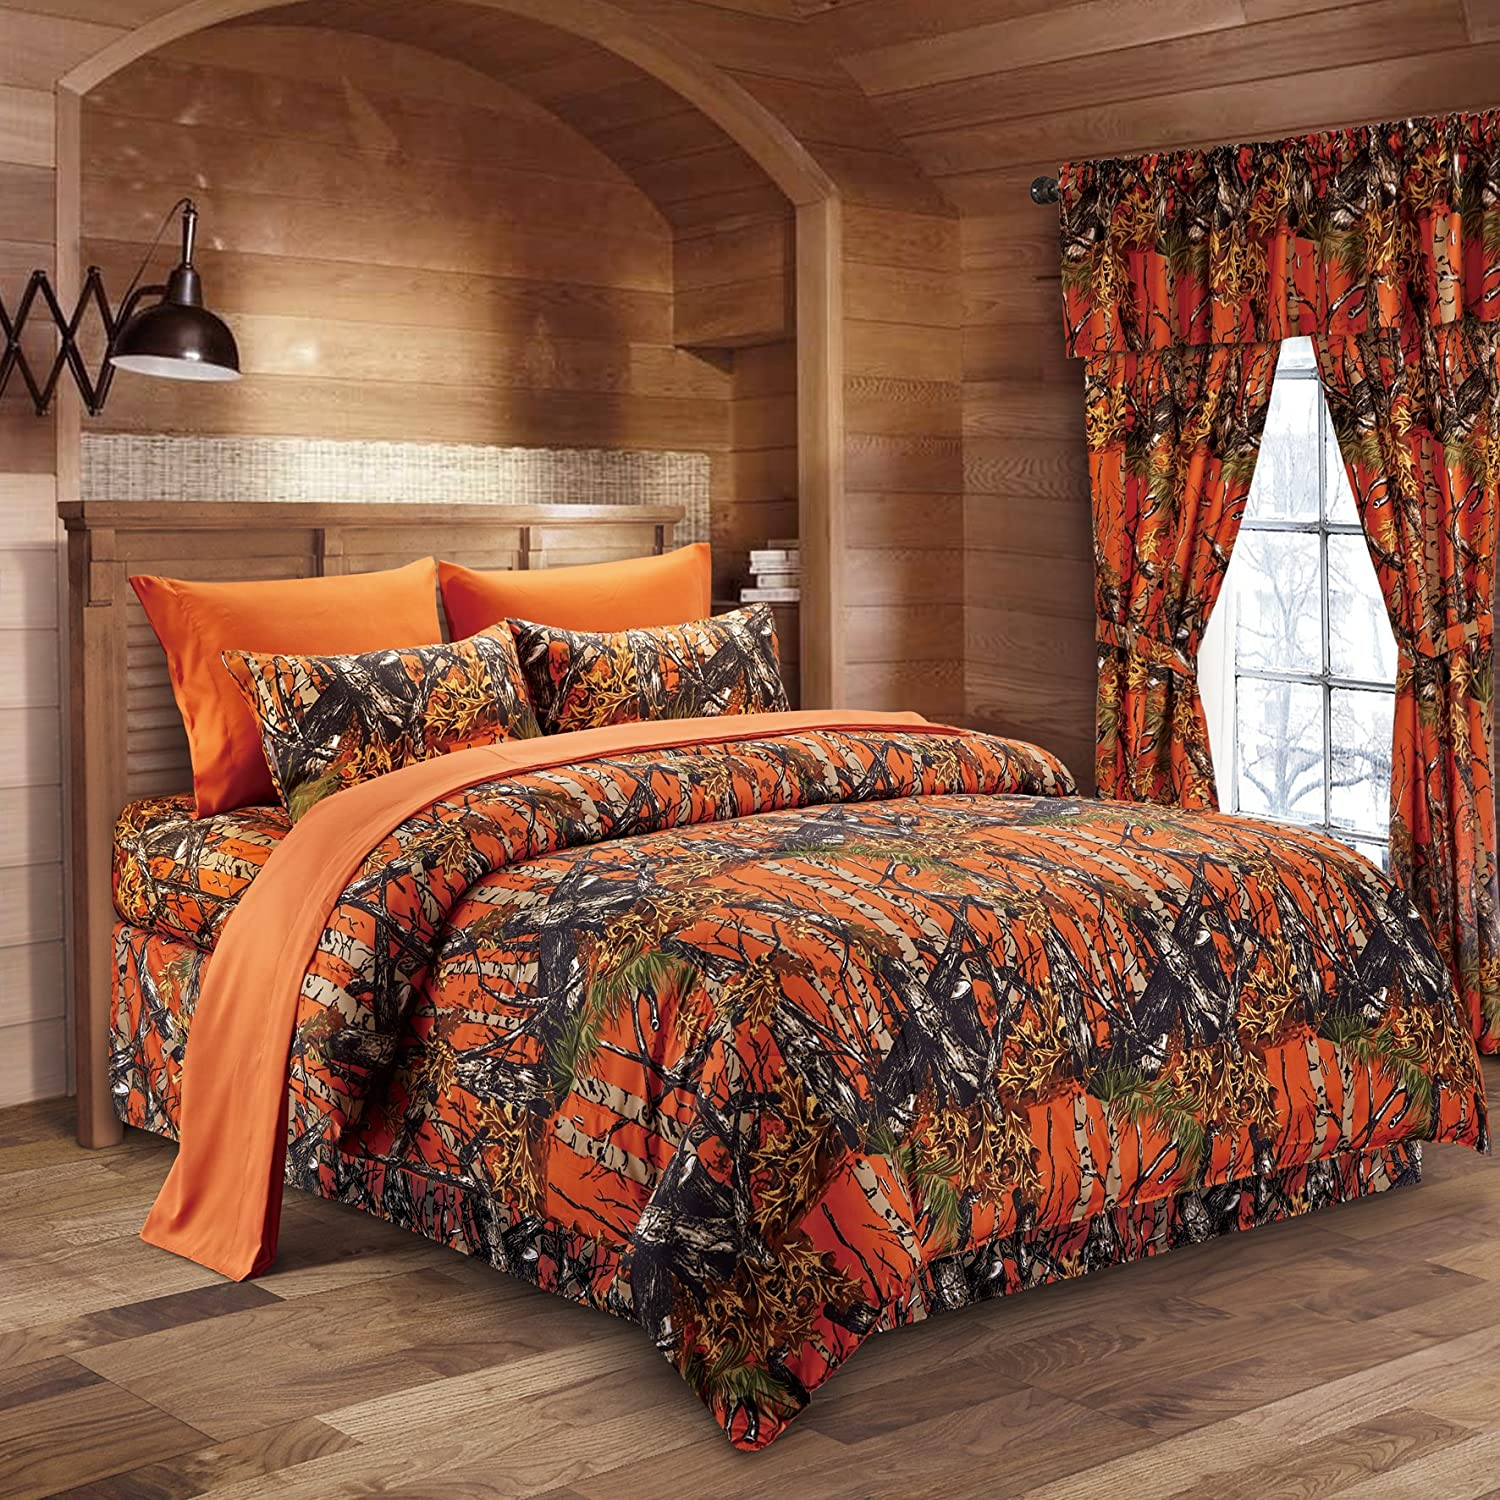 Brown and orange bedding - Orange Camouflage Queen 8pc Premium Luxury Comforter